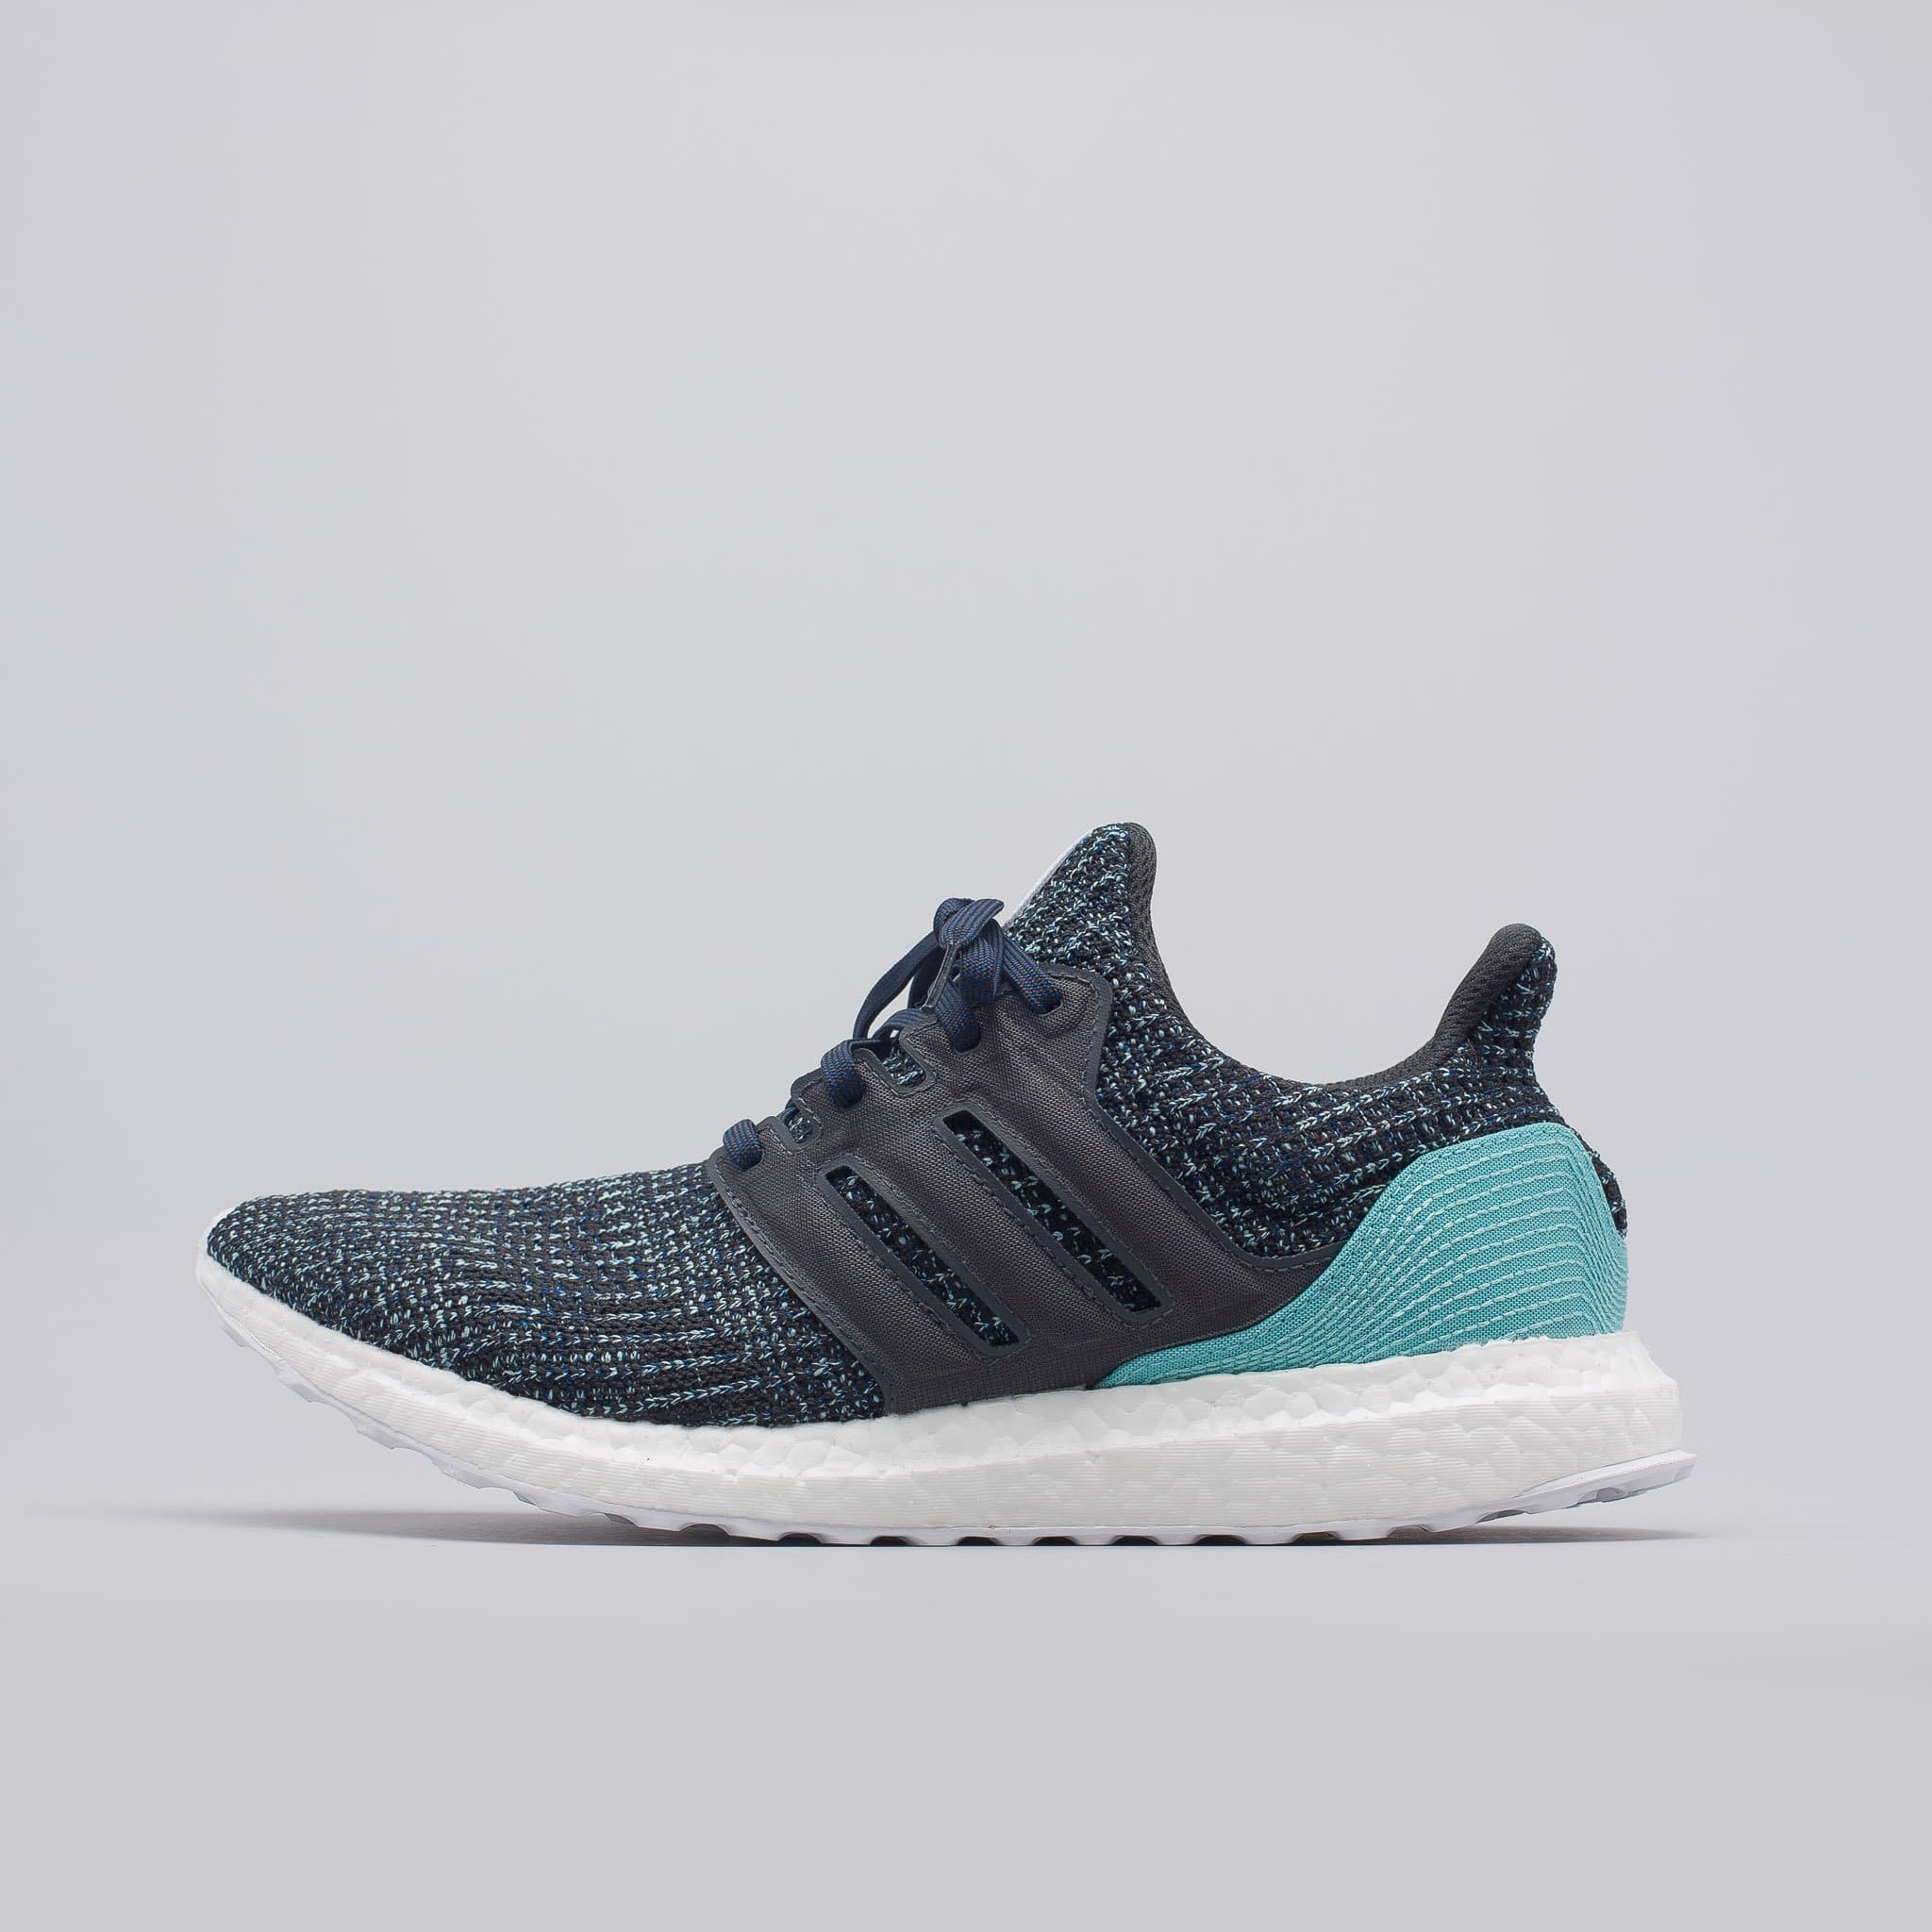 2d37eb5e348 adidas Men s Ultraboost Parley Running Shoes (Carbon) - Slickdeals.net